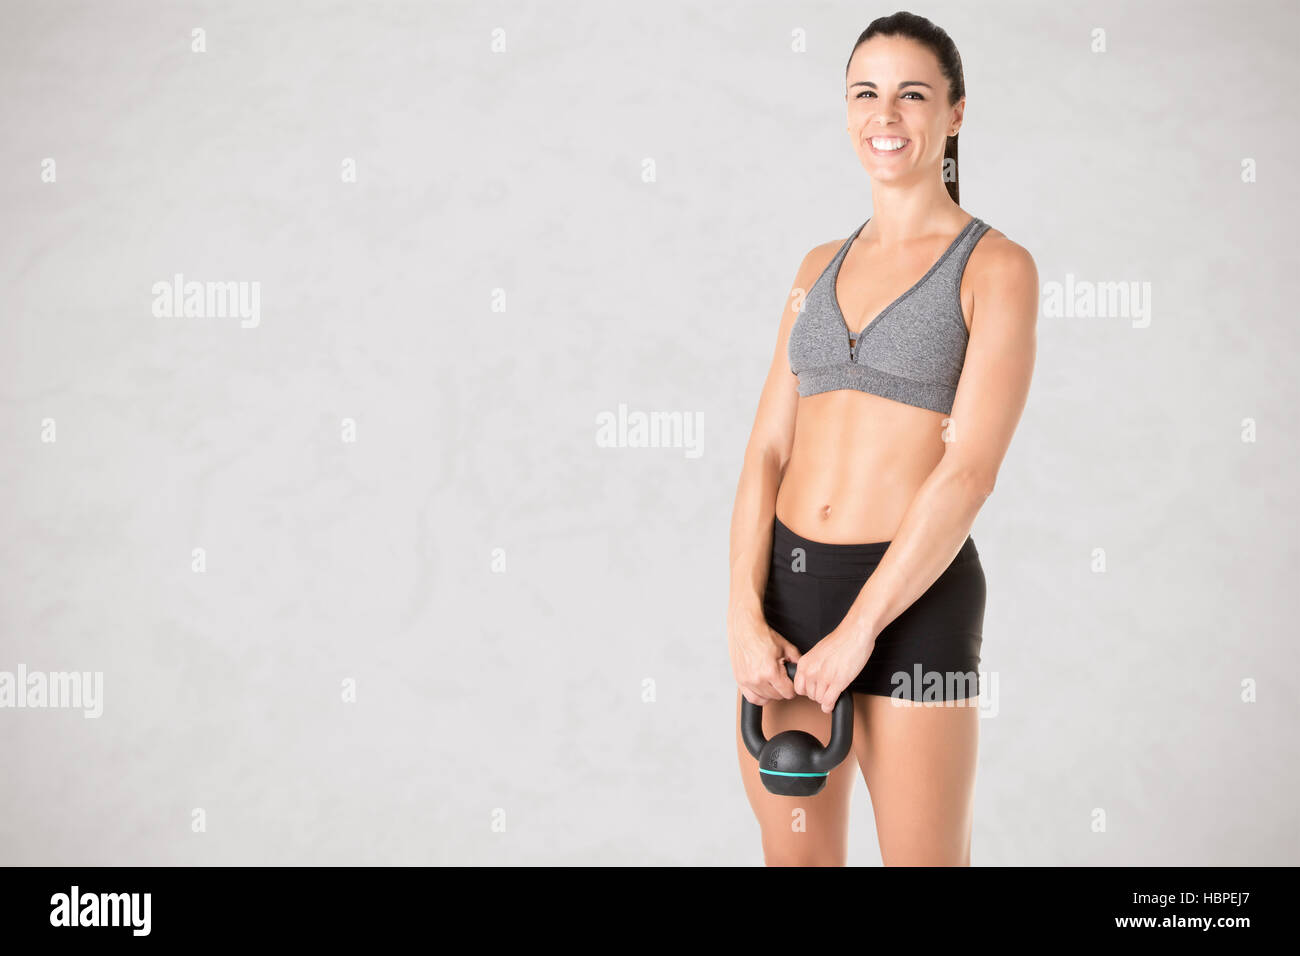 Woman Working Out With a Kettlebell - Stock Image